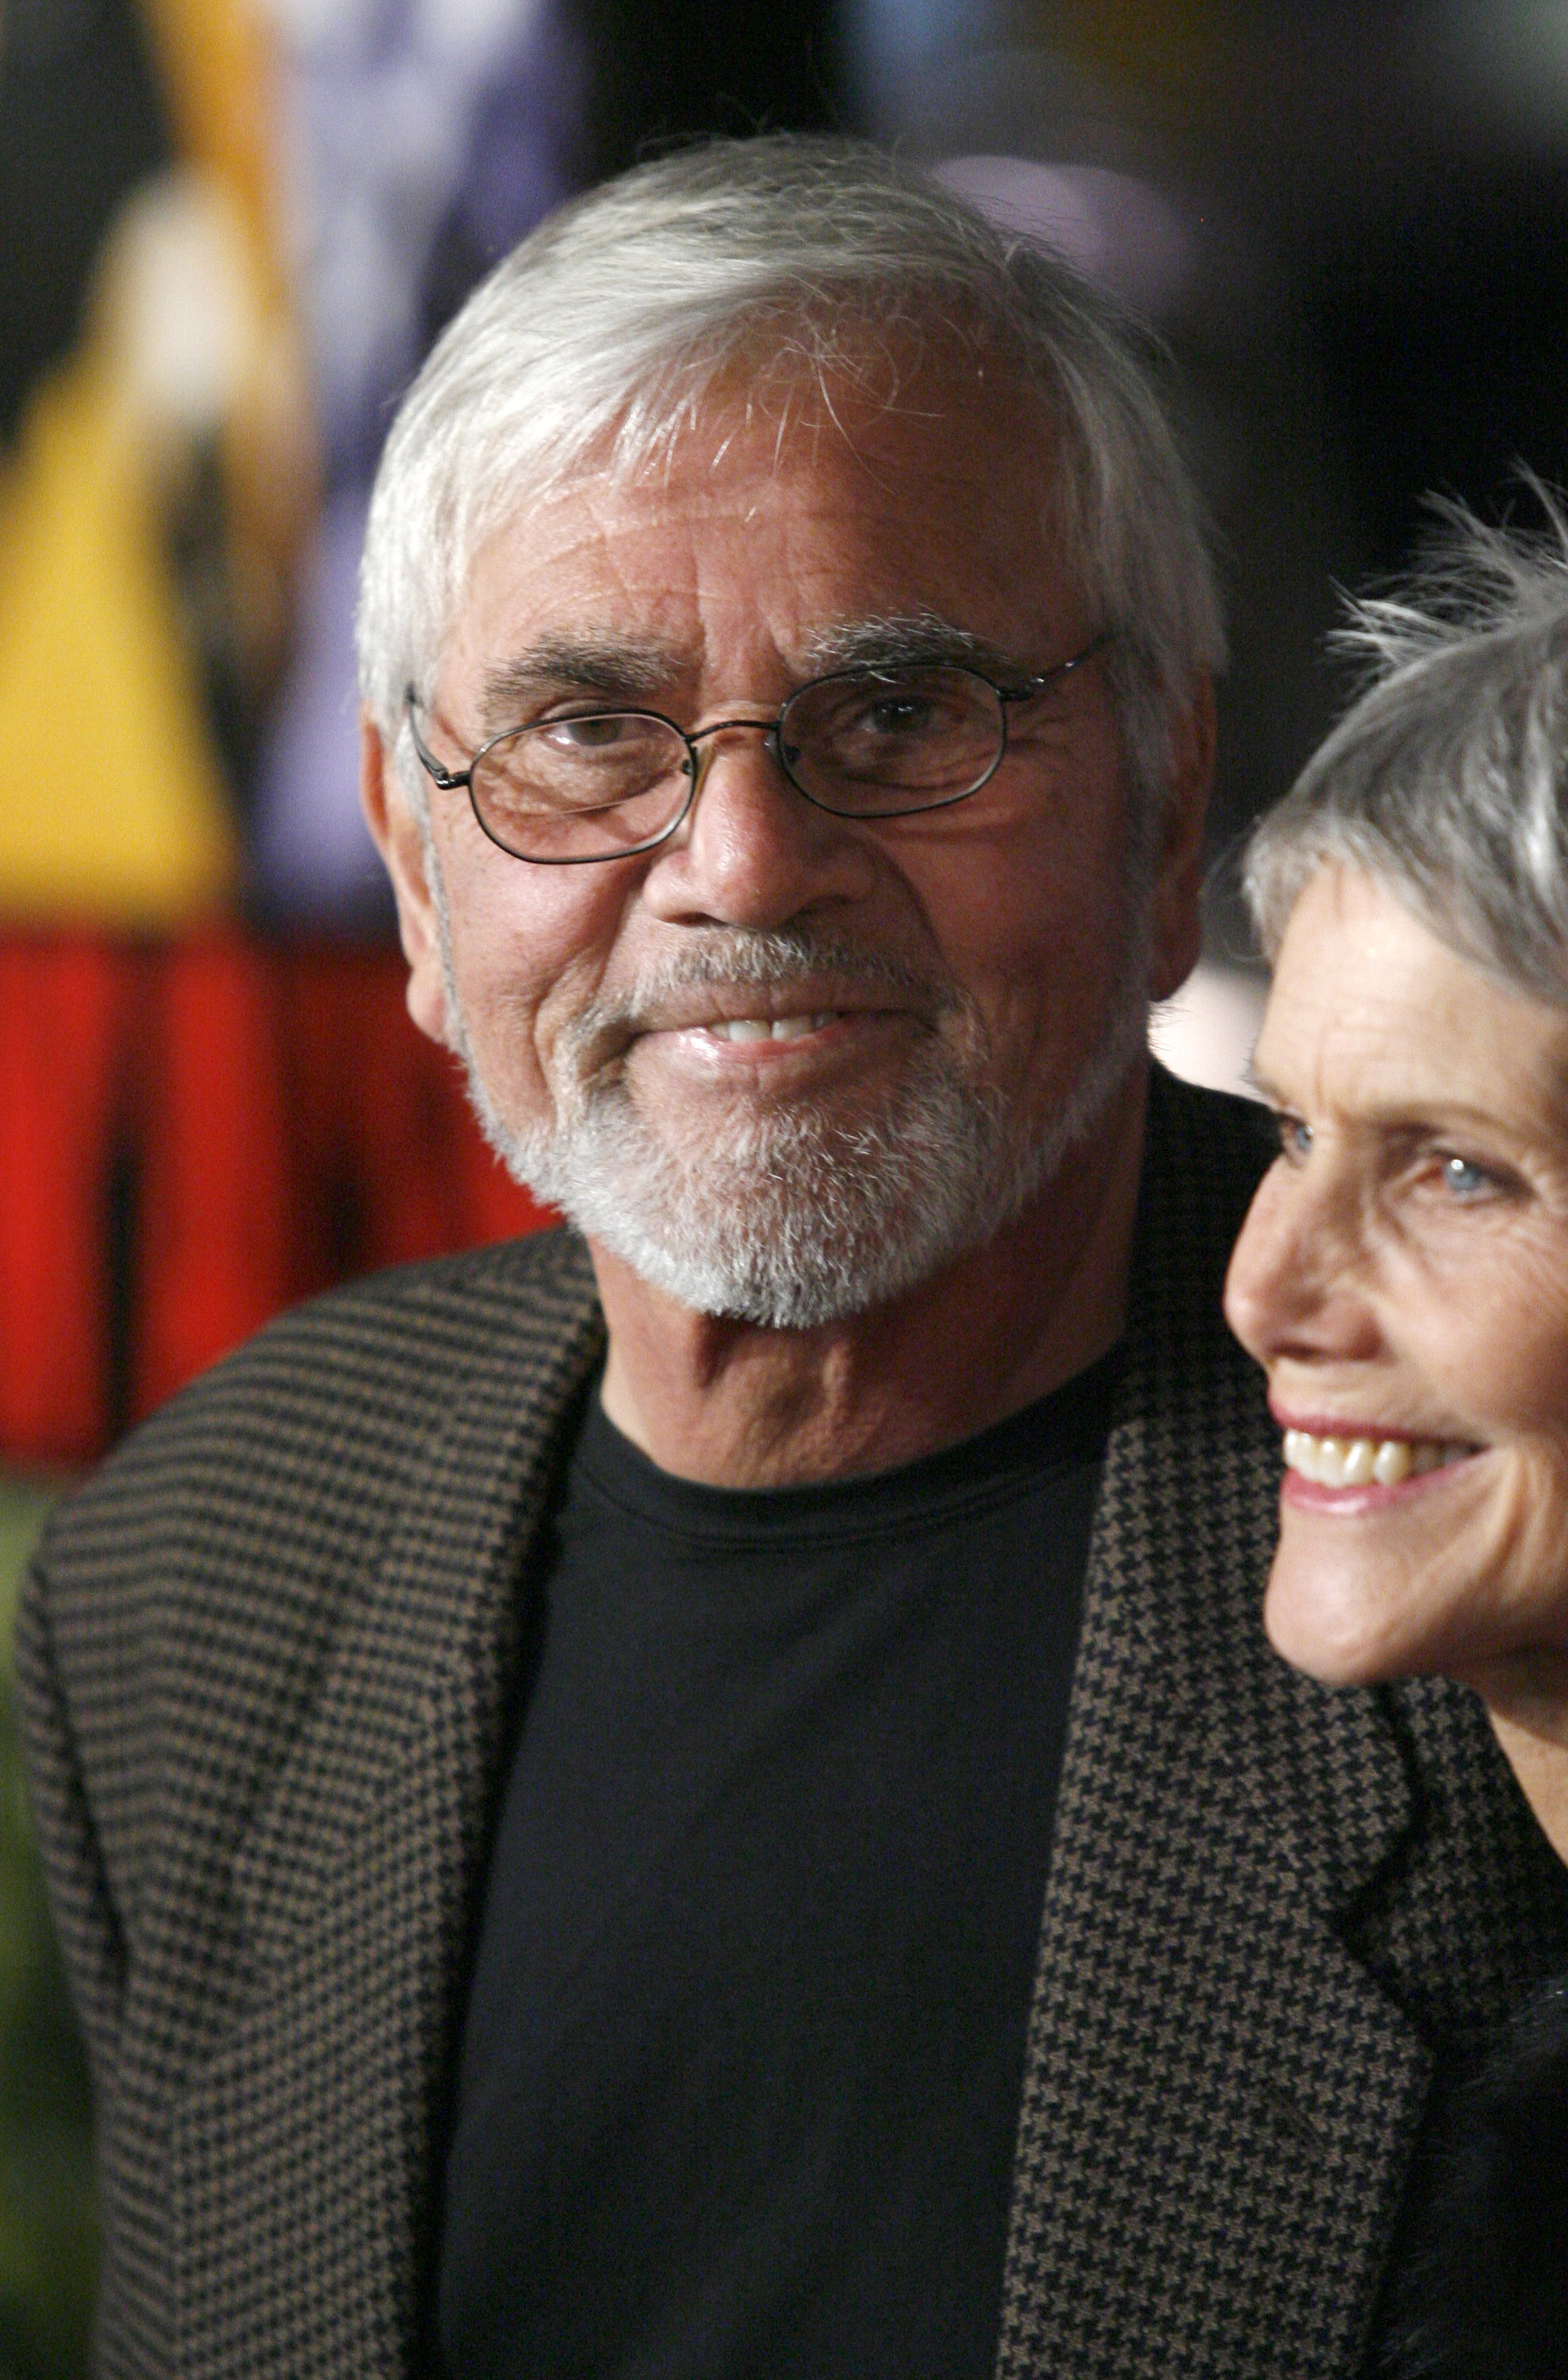 Alex Rocco and wife Shannon Wilcox pose for photographers during the premiere of Smokin' Aces in Hollywood on Jan. 18, 2007